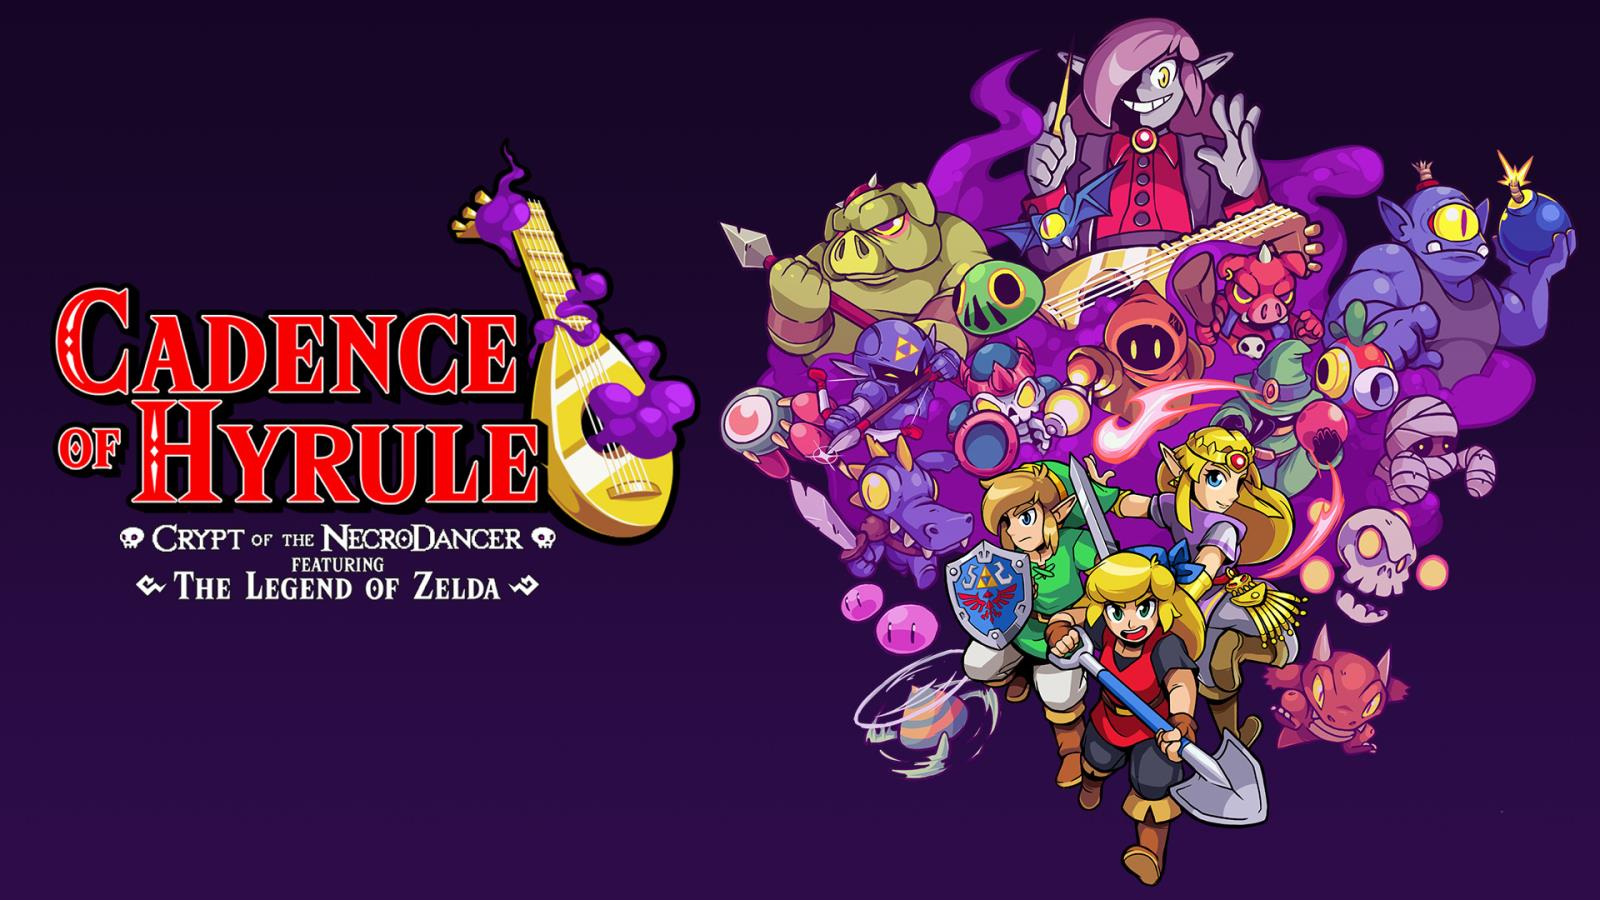 Cadence of Hyrule - Crypt of the NecroDancer Featuring Zelda